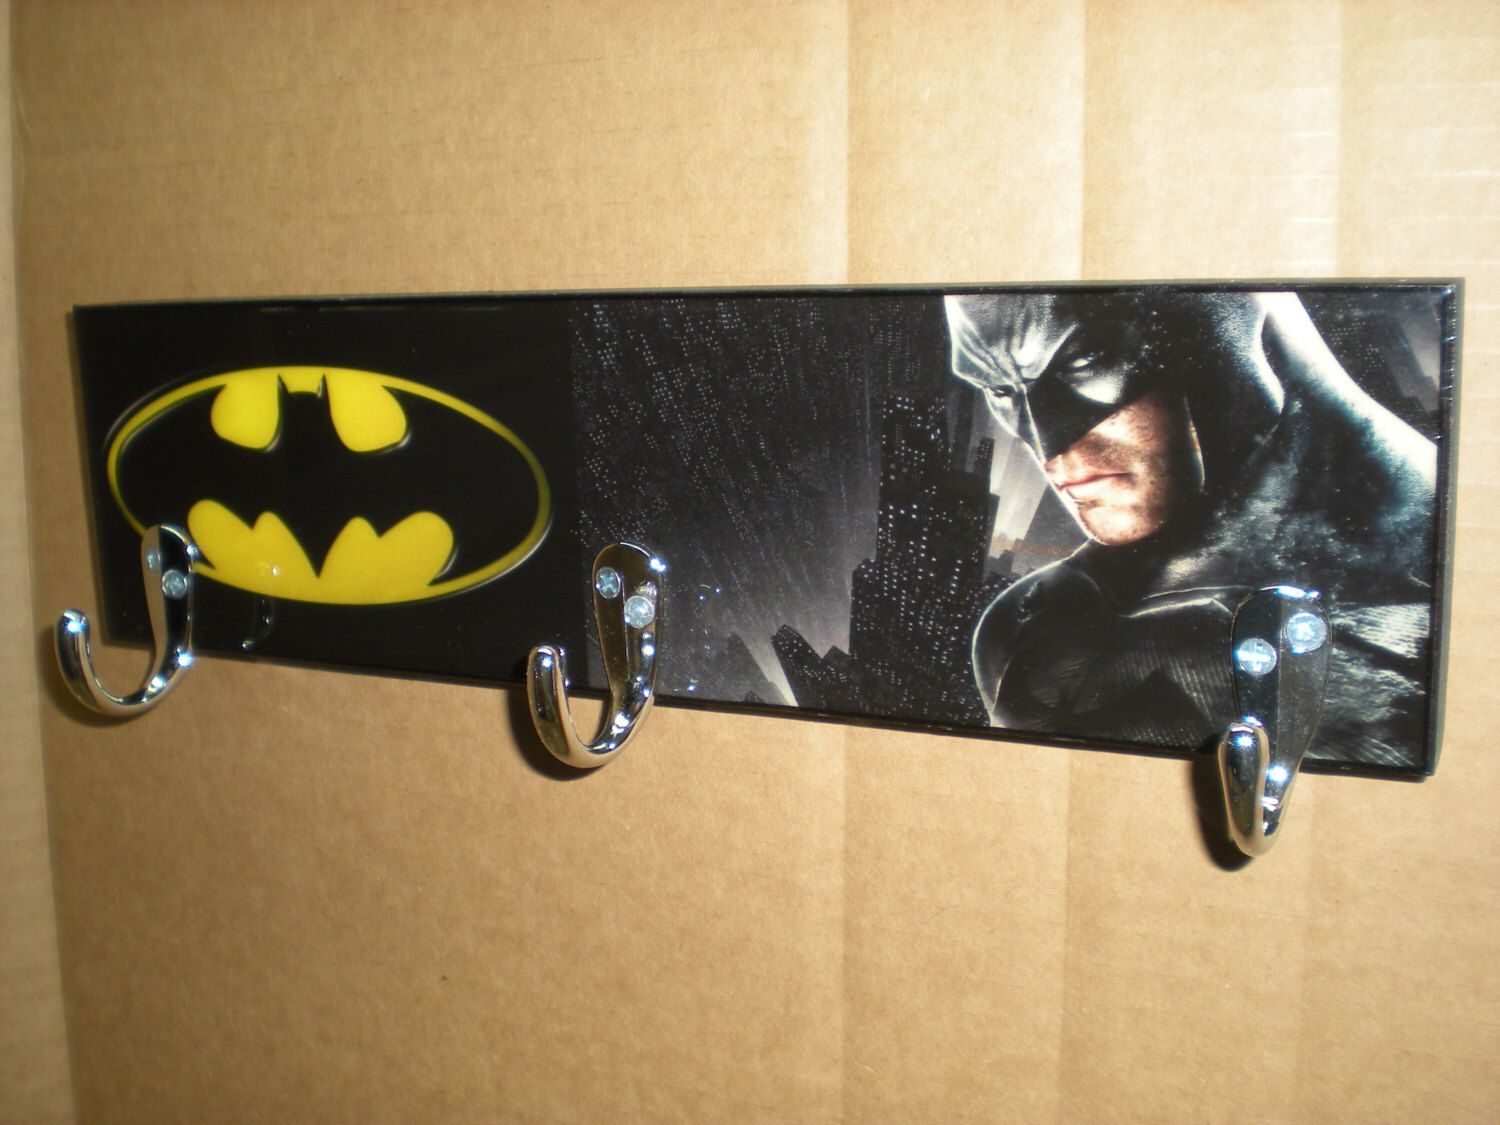 Batman coat rack batman sign super hero decor coat hooks batman wall hooks towel rack - Kids decorative wall hooks ...